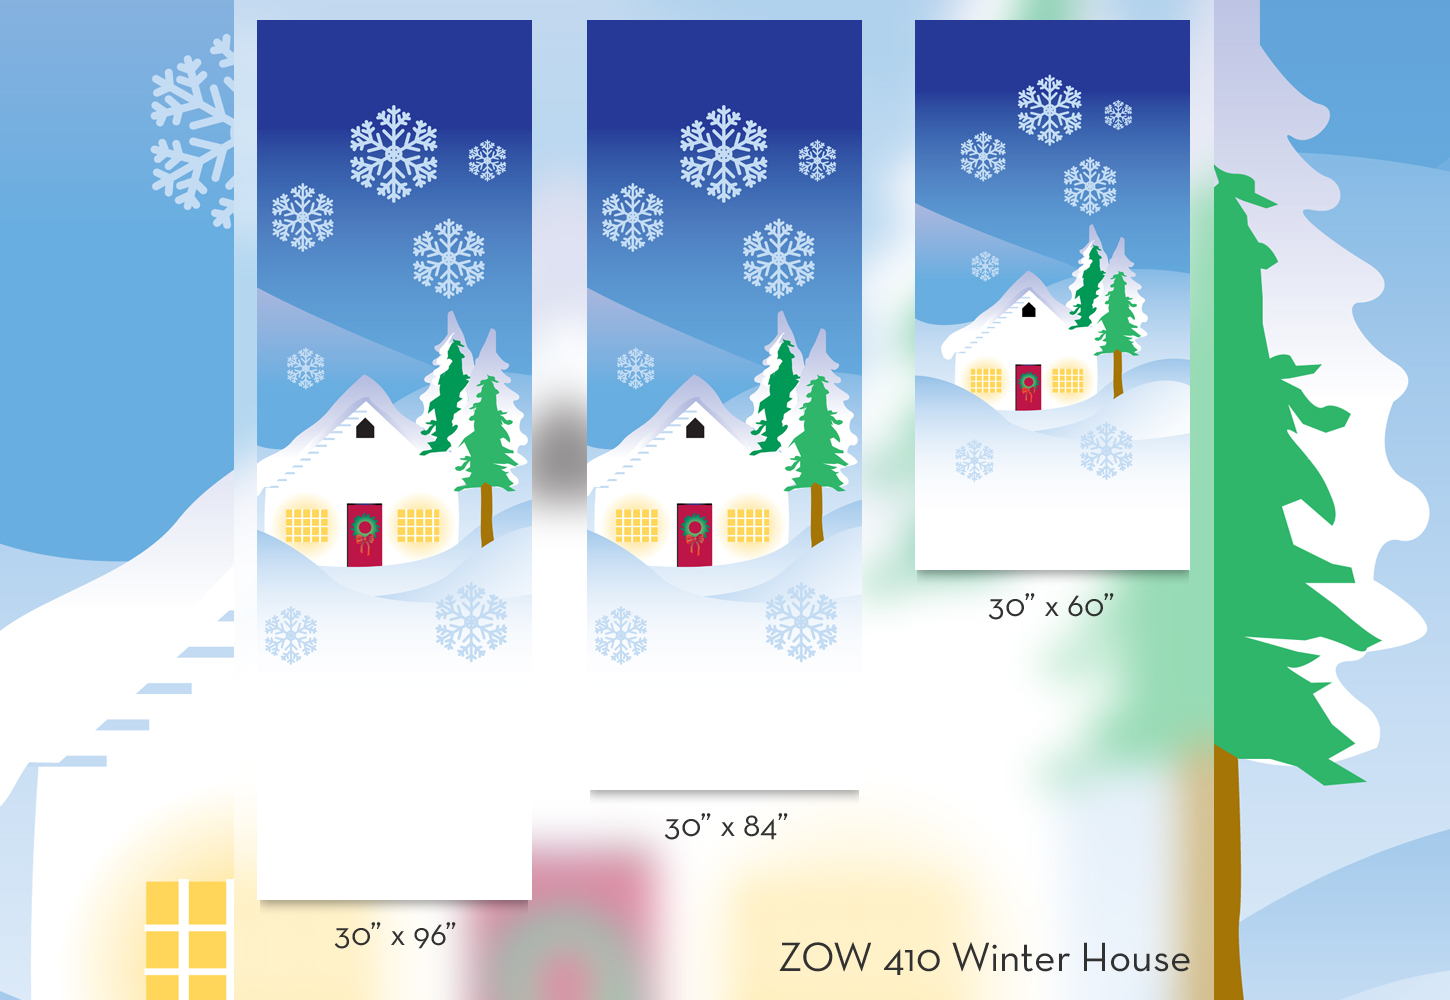 ZOW 410 Winter House